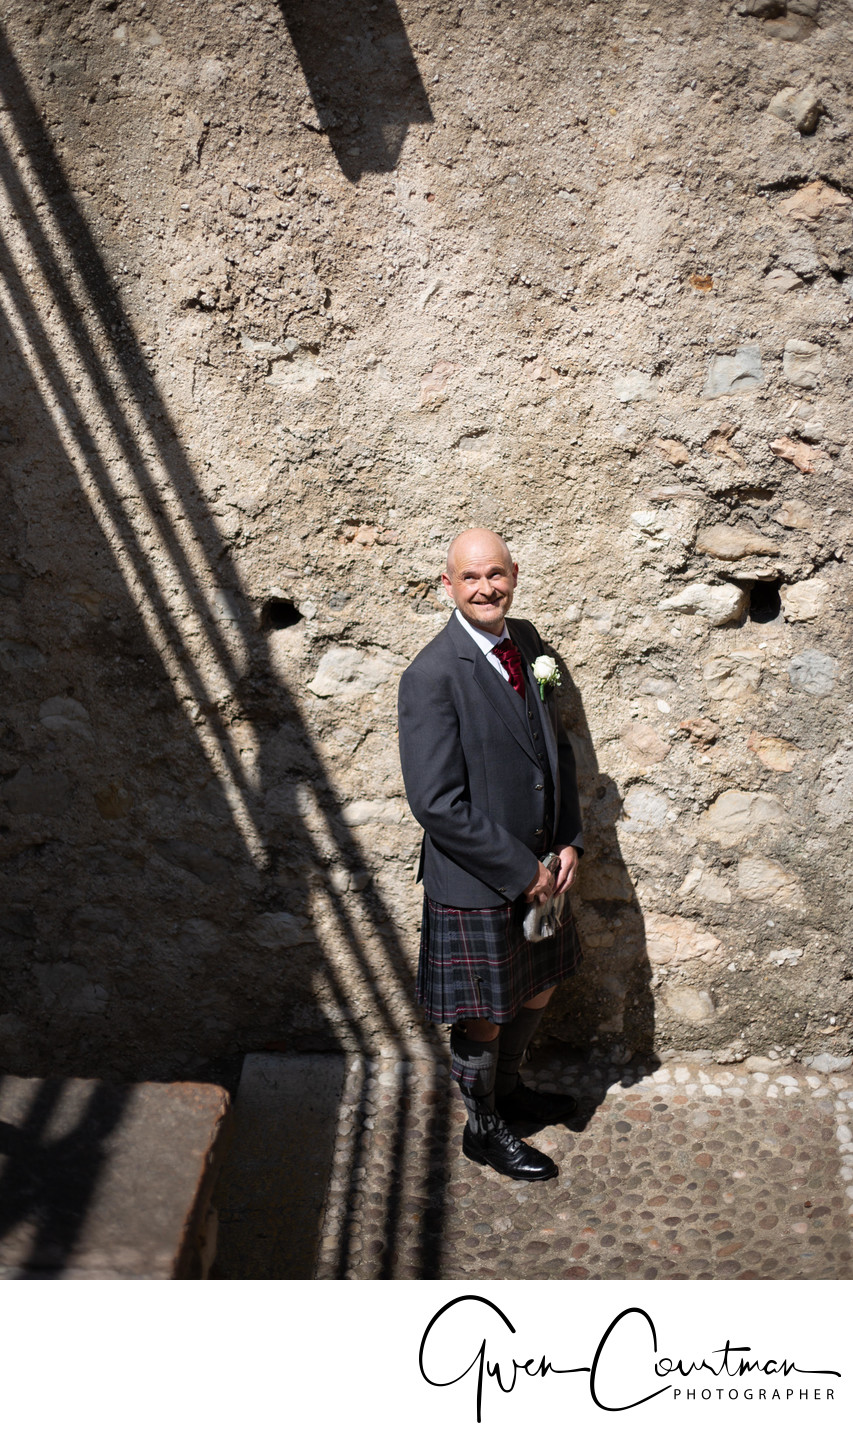 The Groom Graeme in Malcesine Castle , Lake Garda, IT